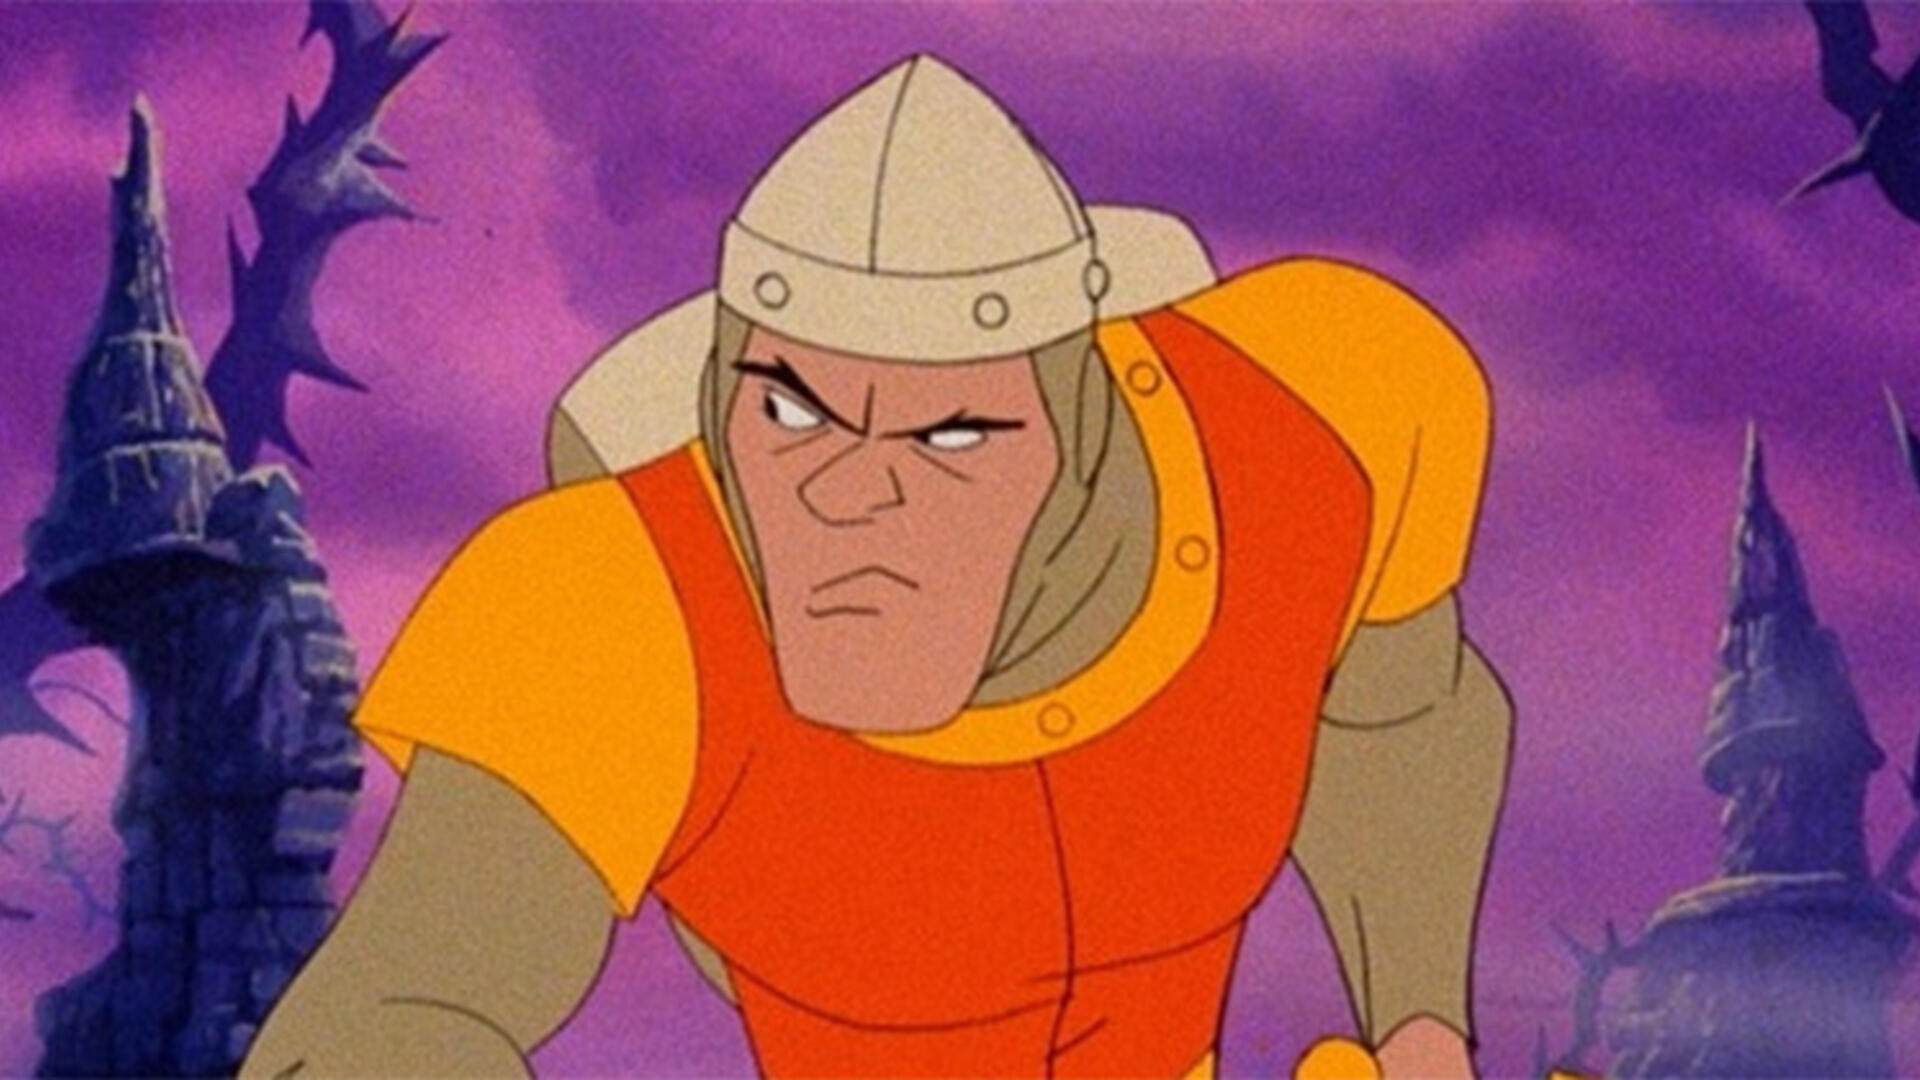 Interview: Don Bluth and Gary Goldman on Bringing Dragon's Lair to the Big Screen